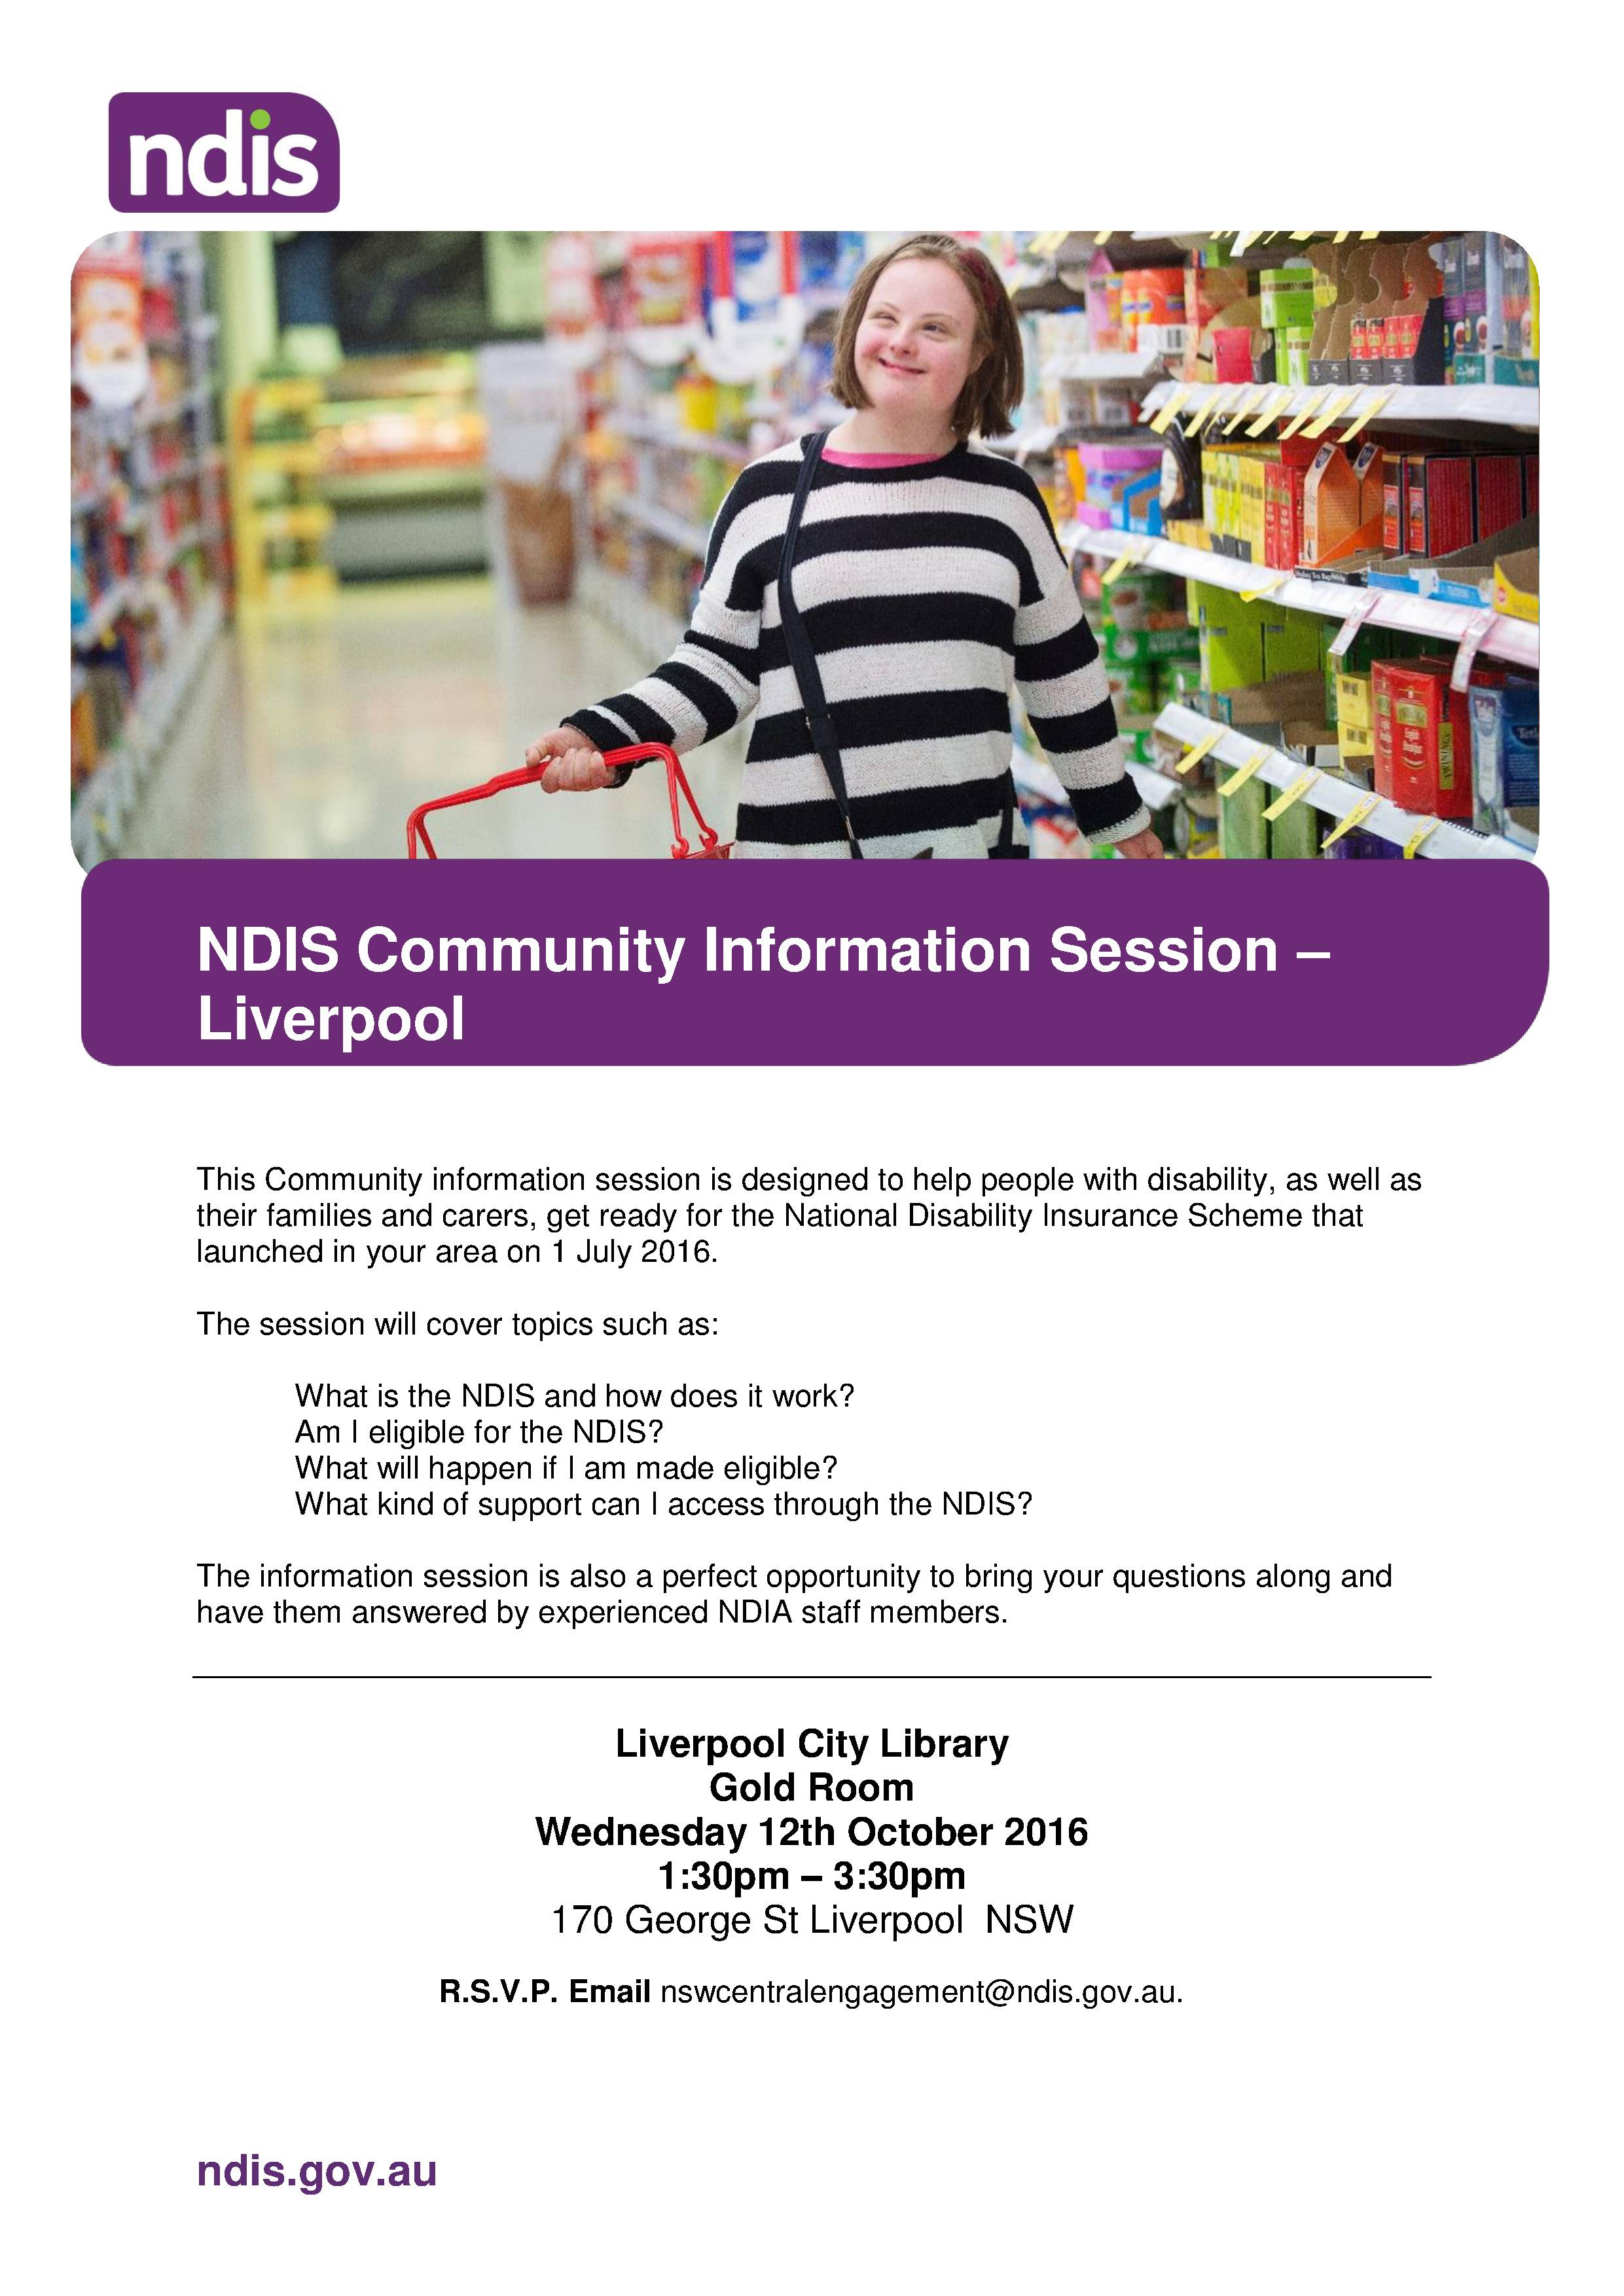 NDIS info session Liverpool